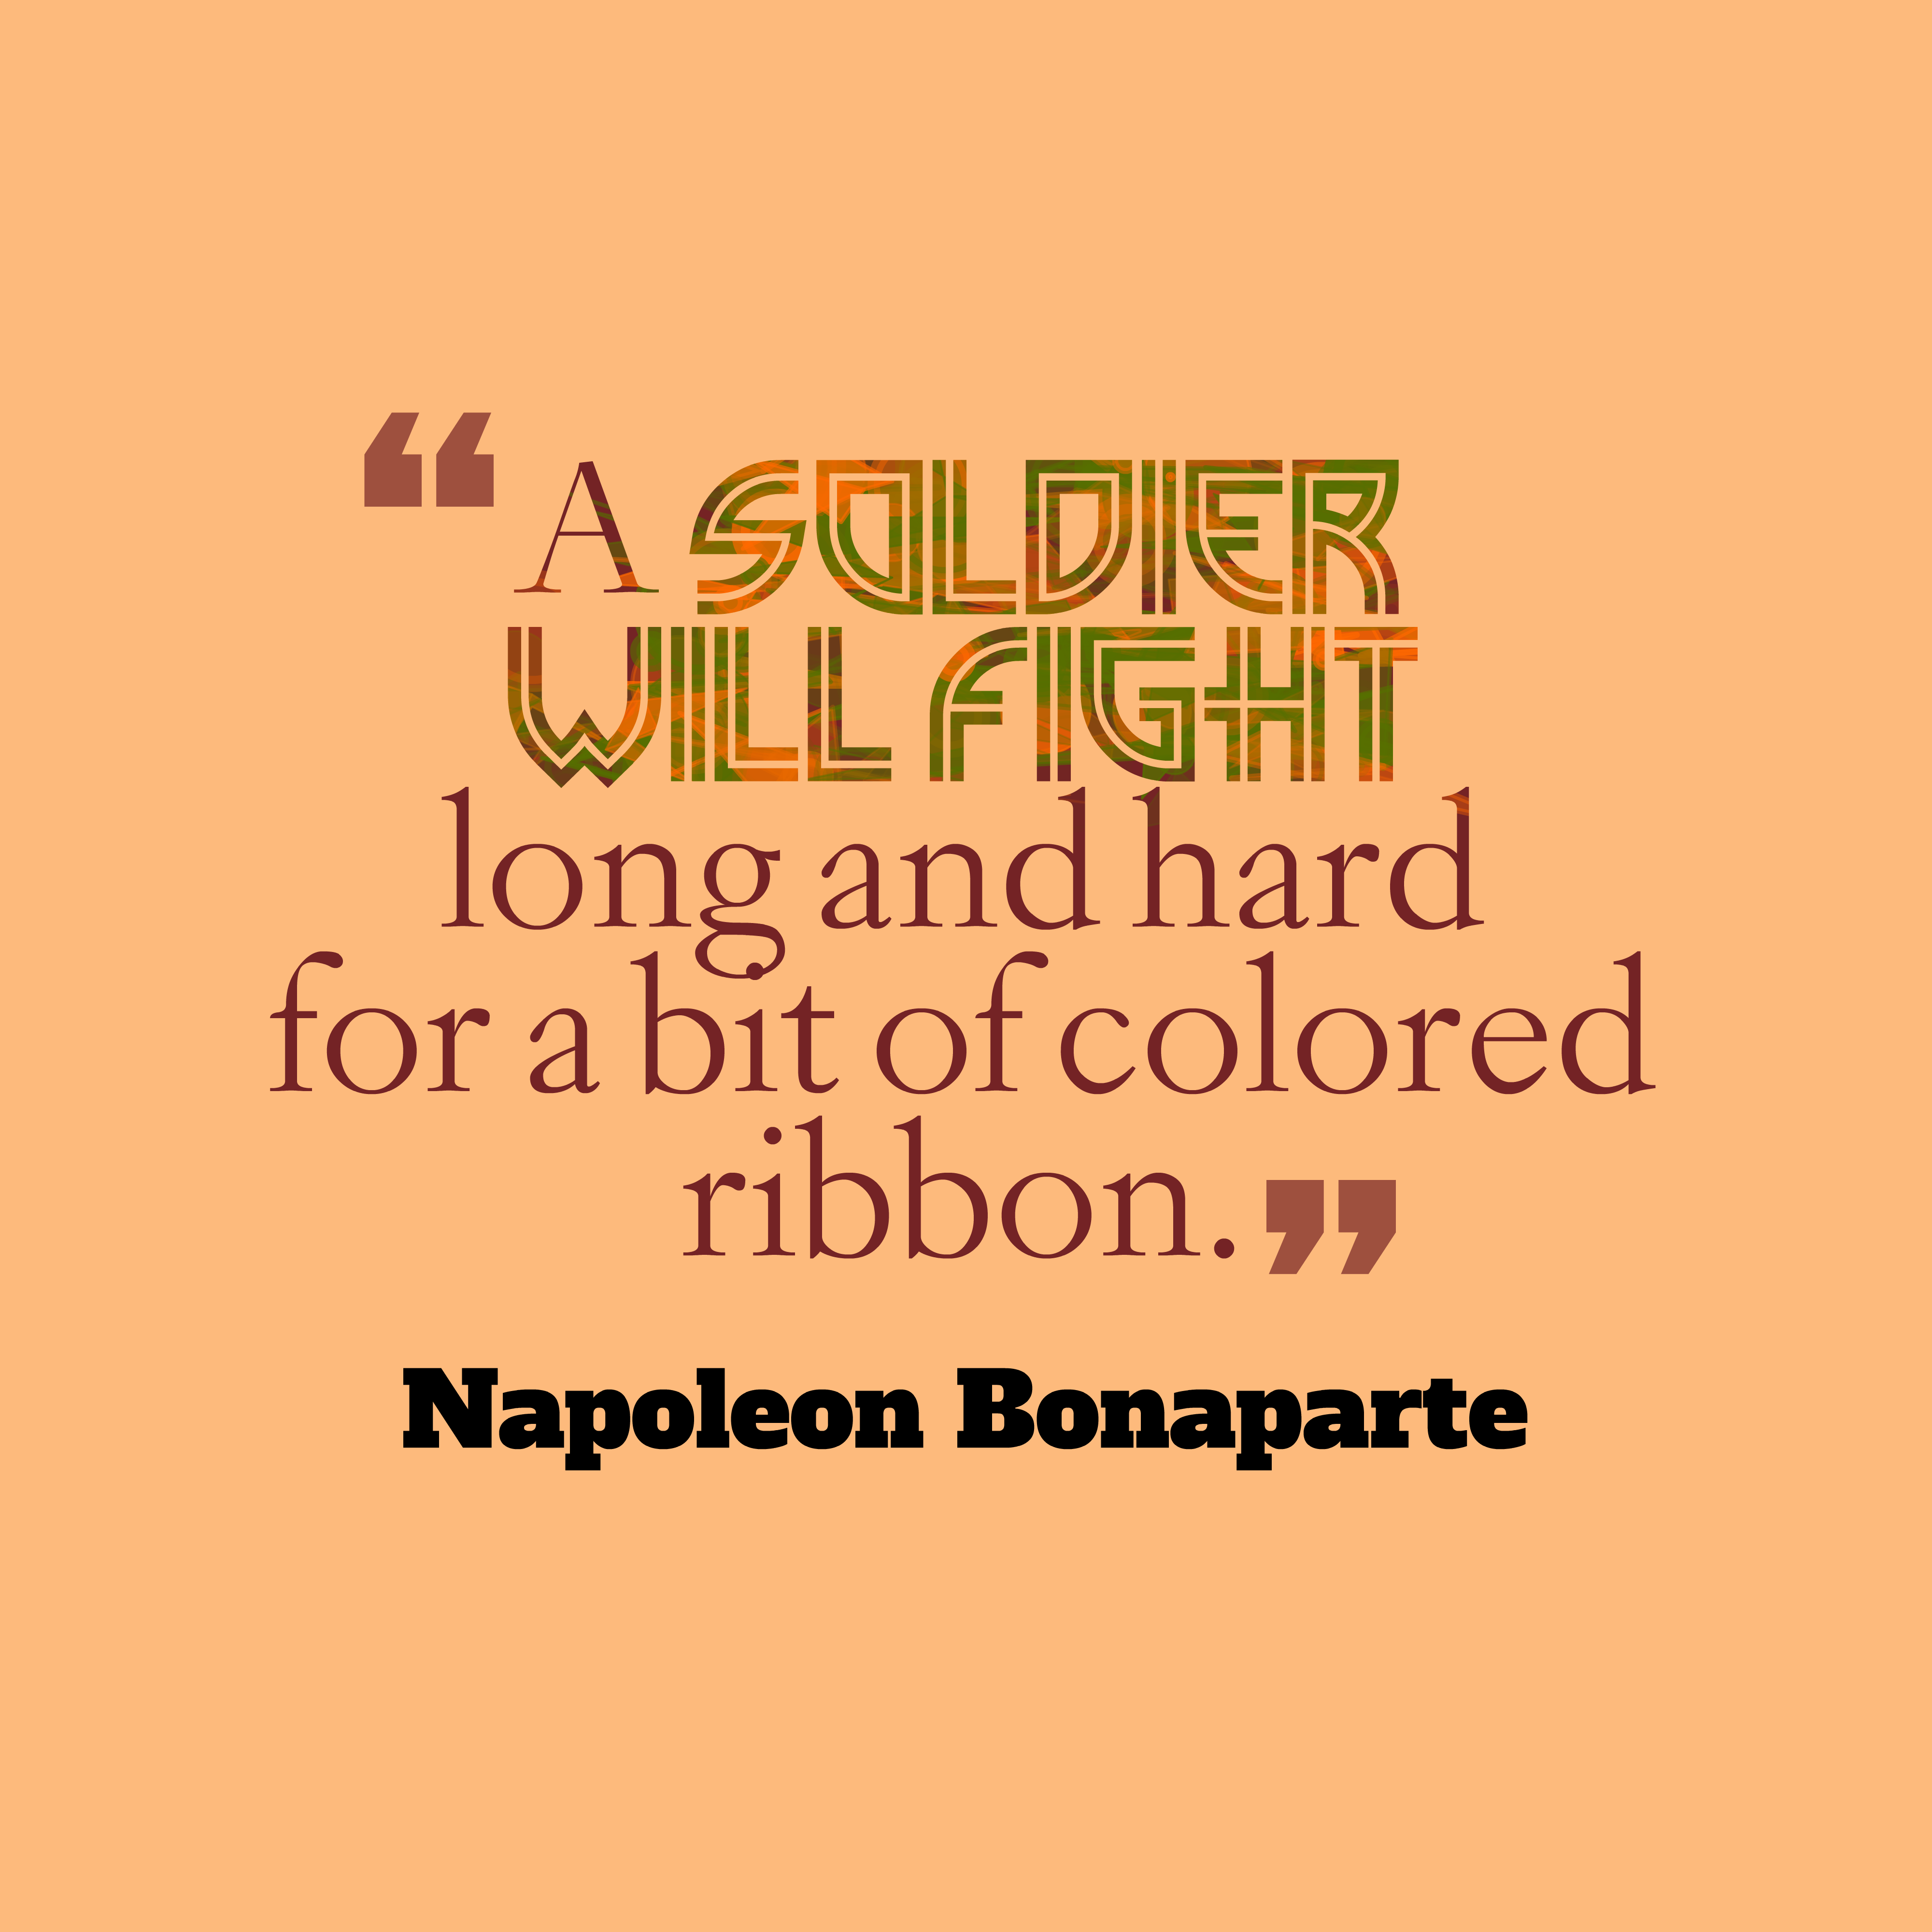 Quotes image of A soldier will fight long and hard for a bit of colored ribbon.